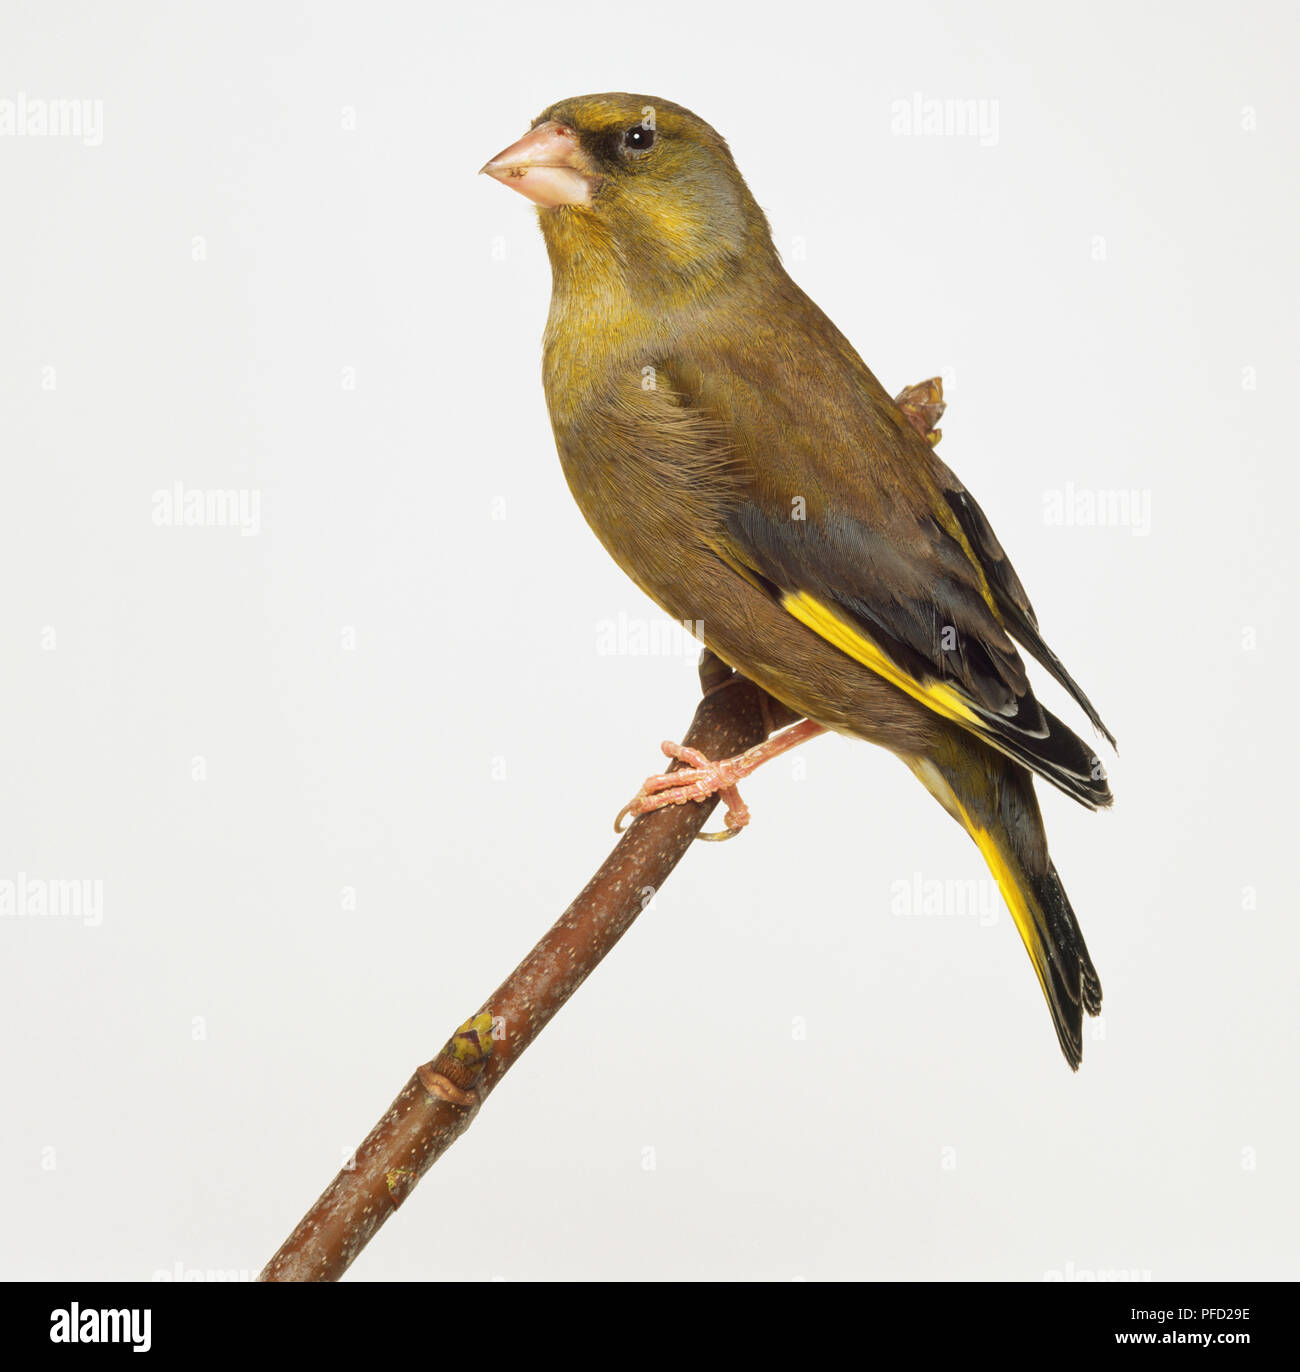 Side view of a European Greenfinch with head in profile, perching on a narrow branch, showing dull olive plumage, yellow wing bar and yellow tail edge. - Stock Image